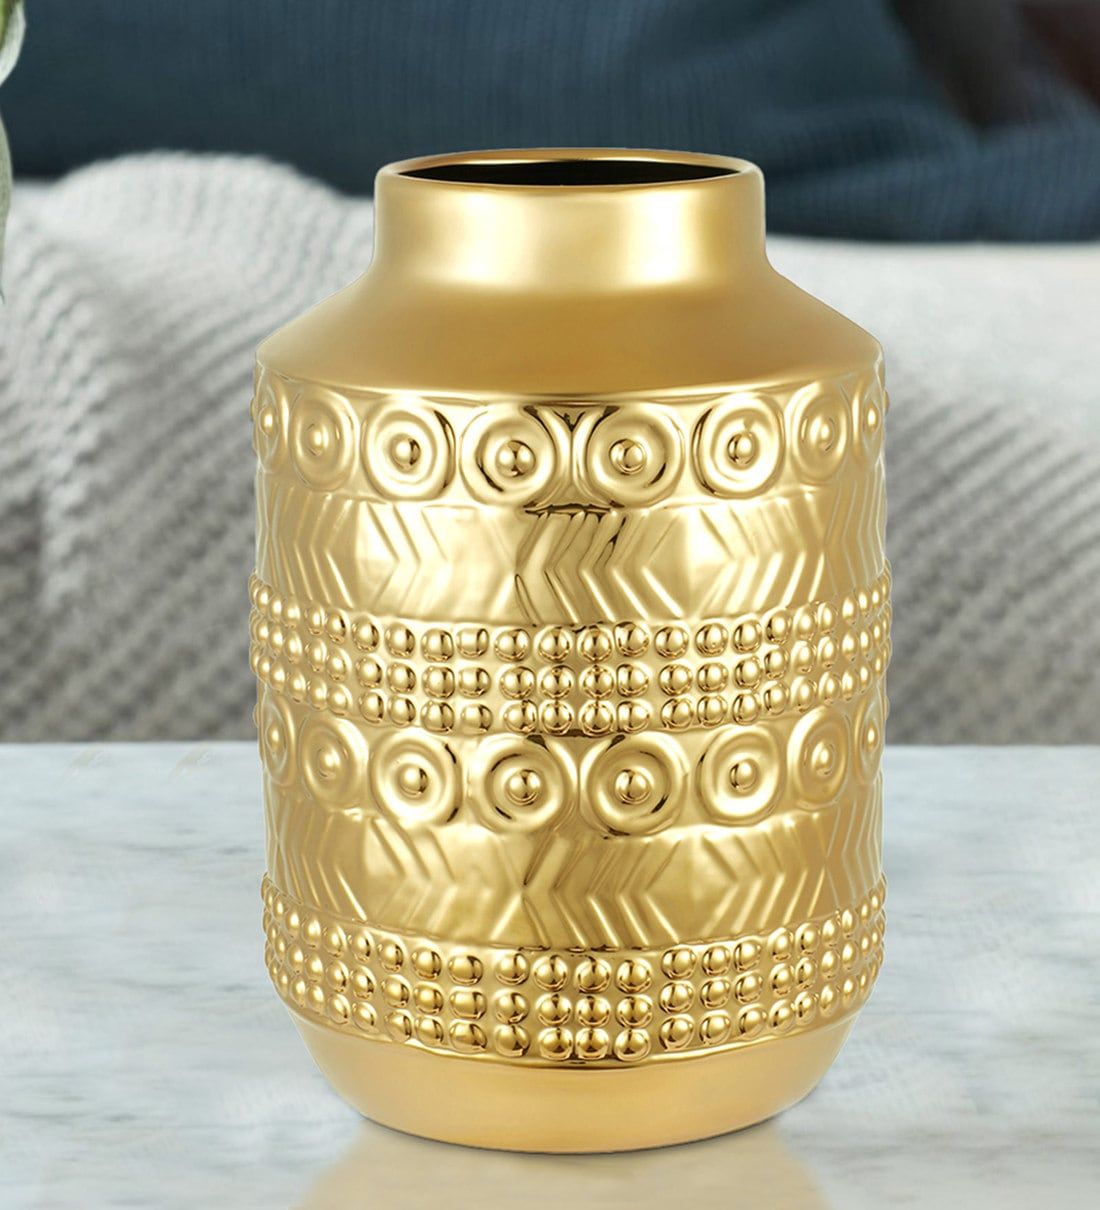 Buy Gold Blake Egyptian Cylinder Small Ceramic Vase By Hometown Online Table Vases Vases Home Decor Pepperfry Product